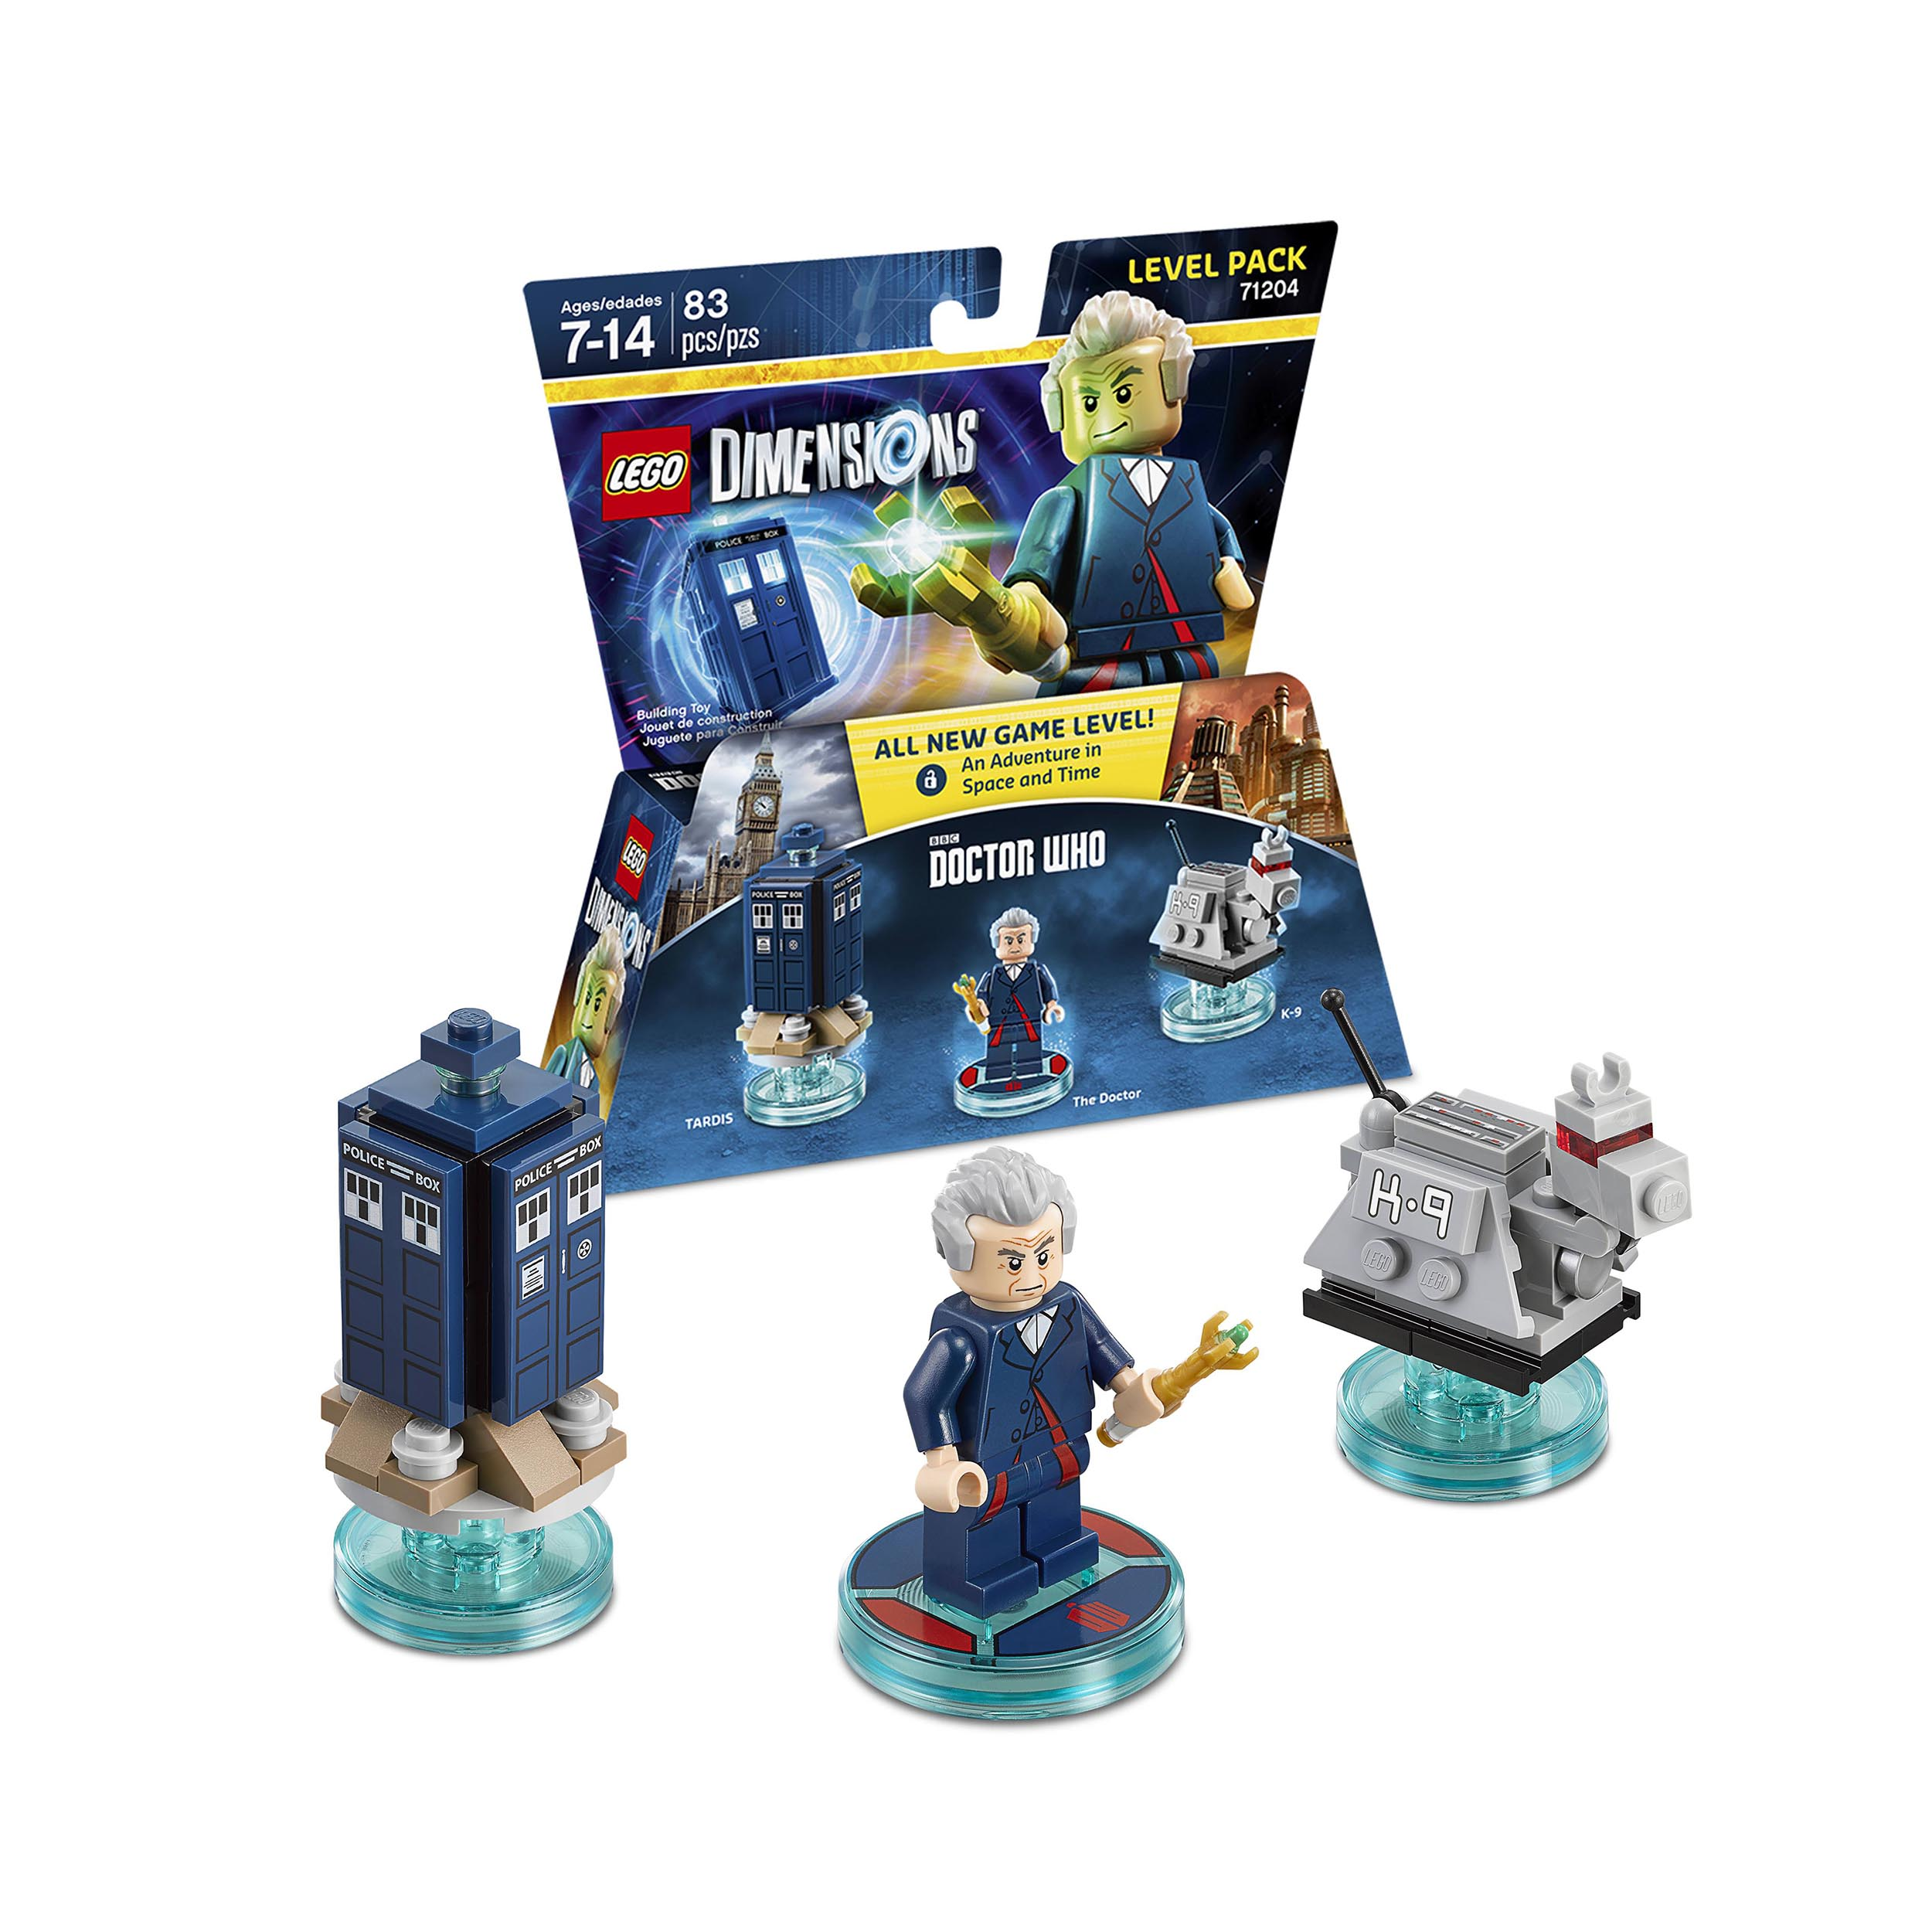 [Lego] Doctor Who sur CUUSOO - Page 2 Lego-dimensions-will-feature-peter-capaldi-as-doctor-who-daleks-and-cybermen-included-486455-2